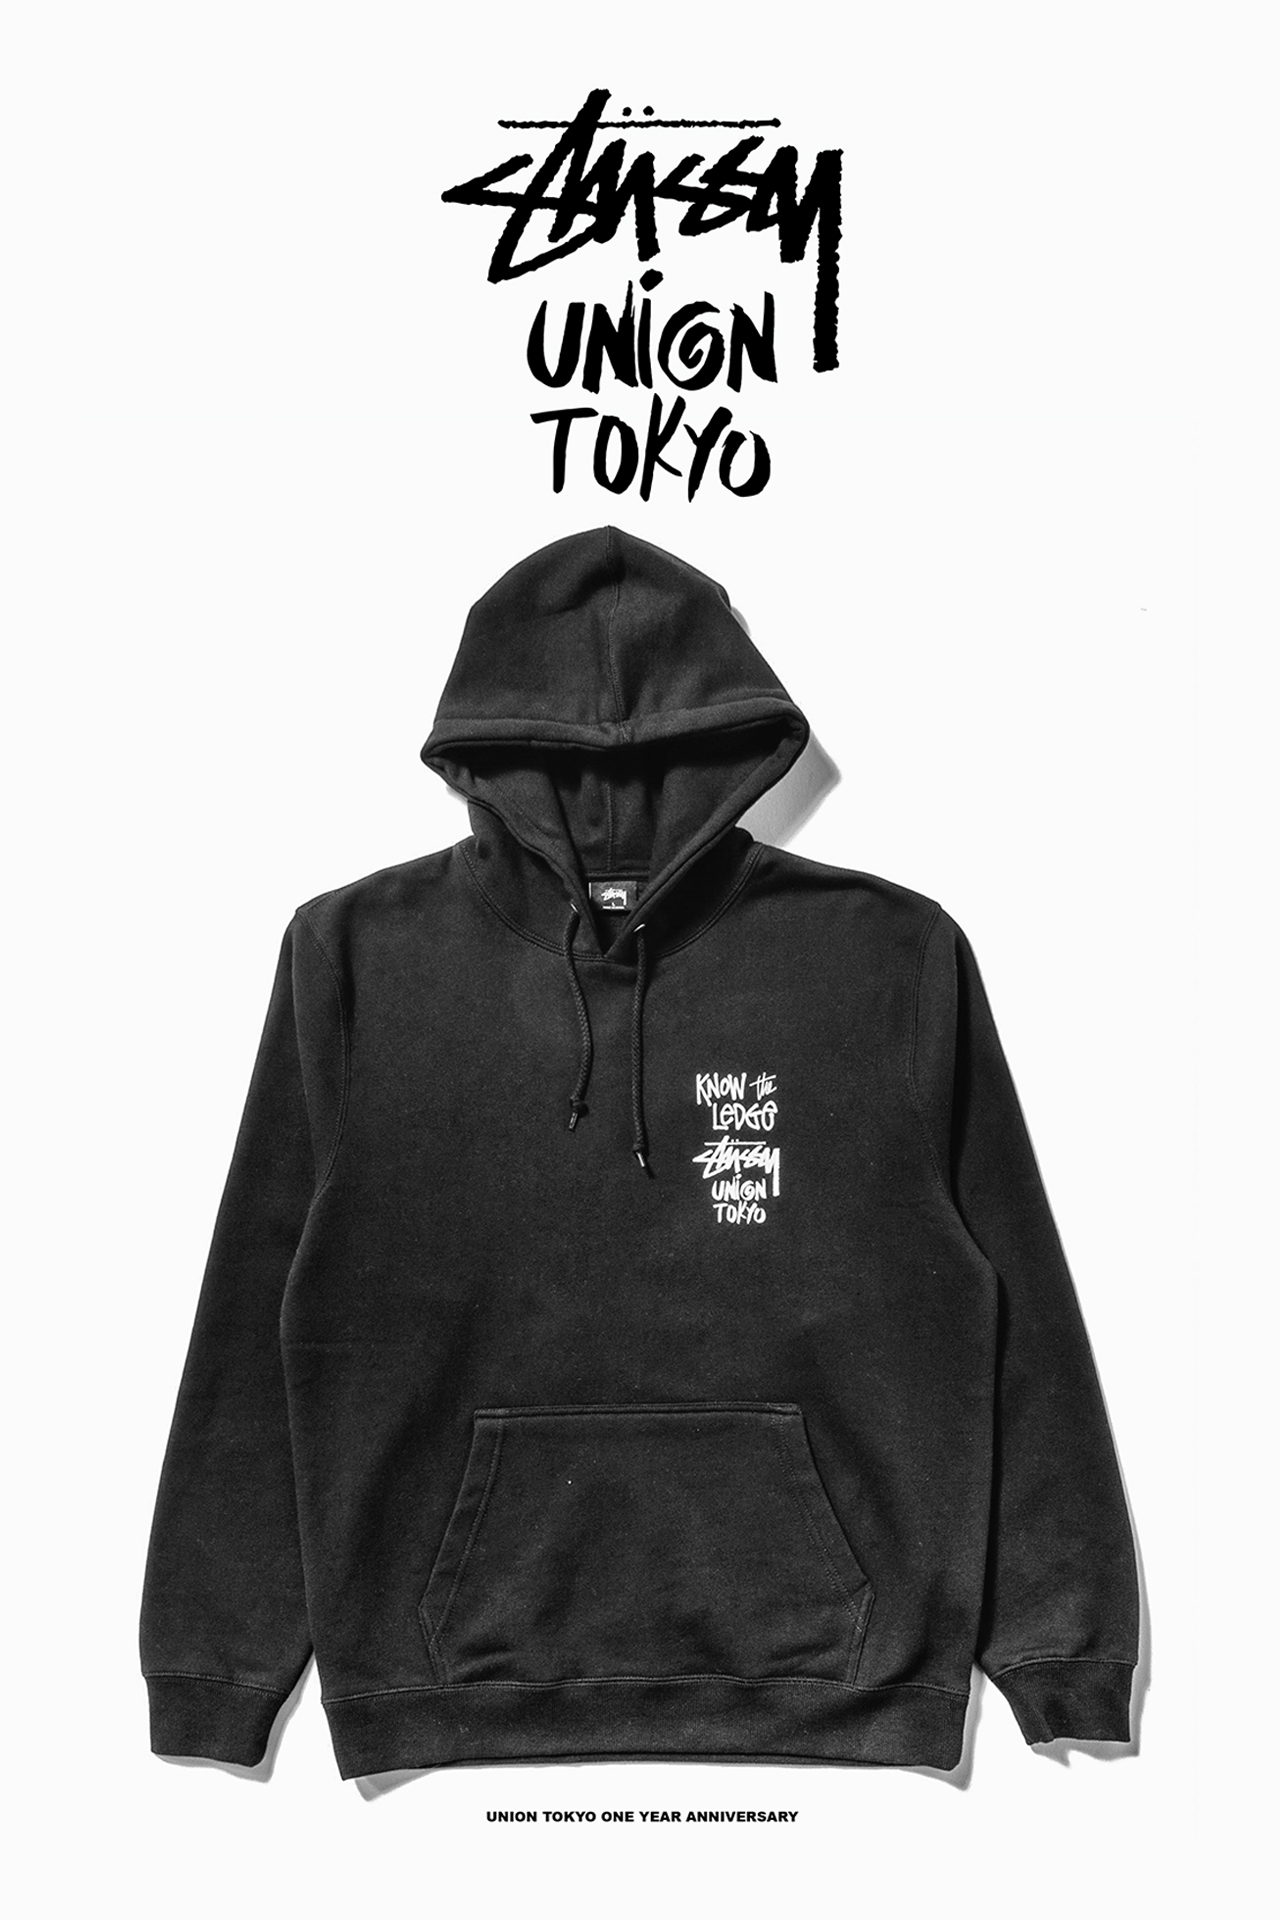 union-tokyo-stussy-1st-anniversary-release-20190420